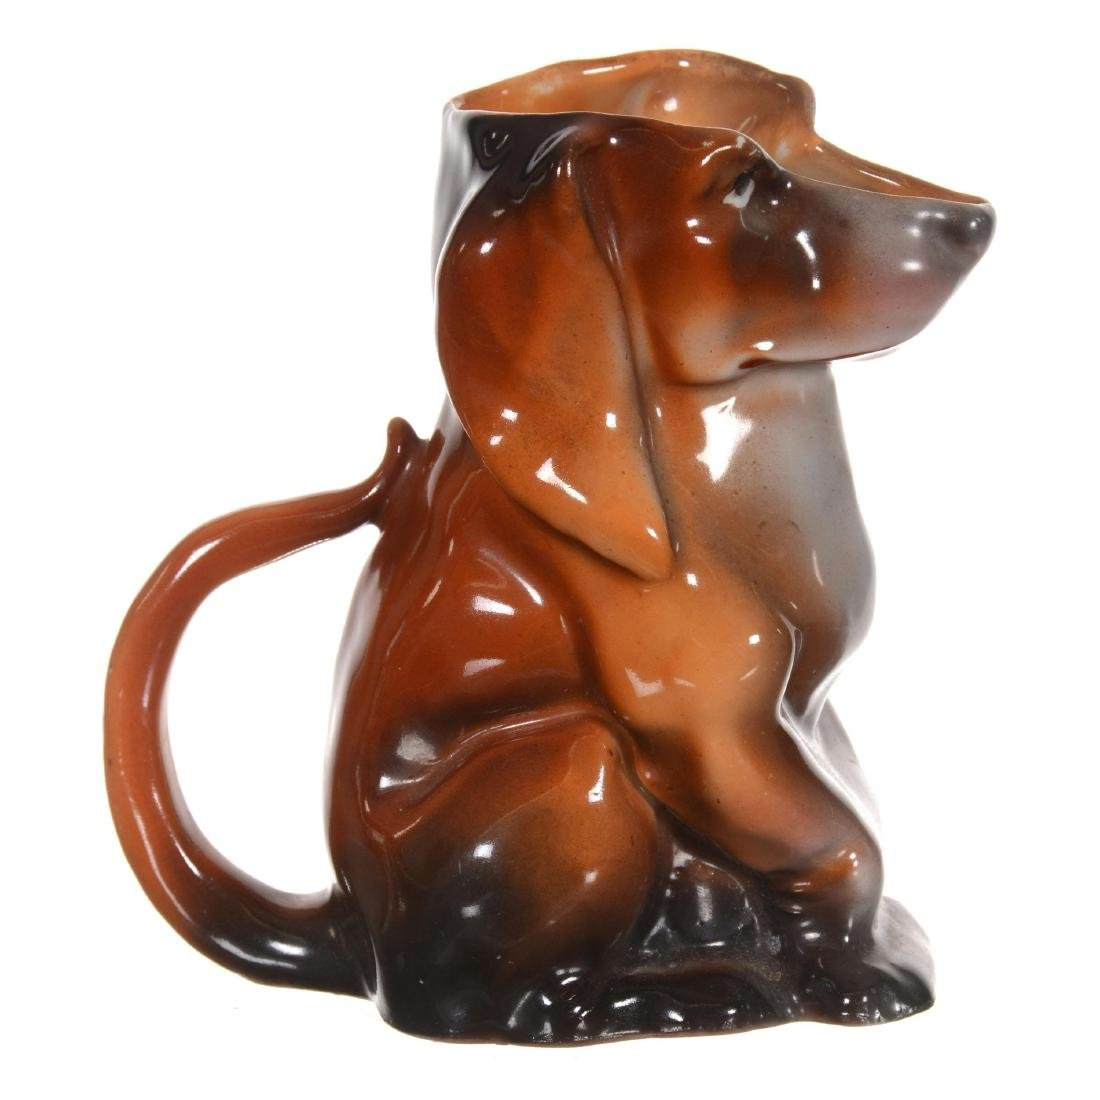 Royal Bayreuth Dachshund Milk Pitcher - 2